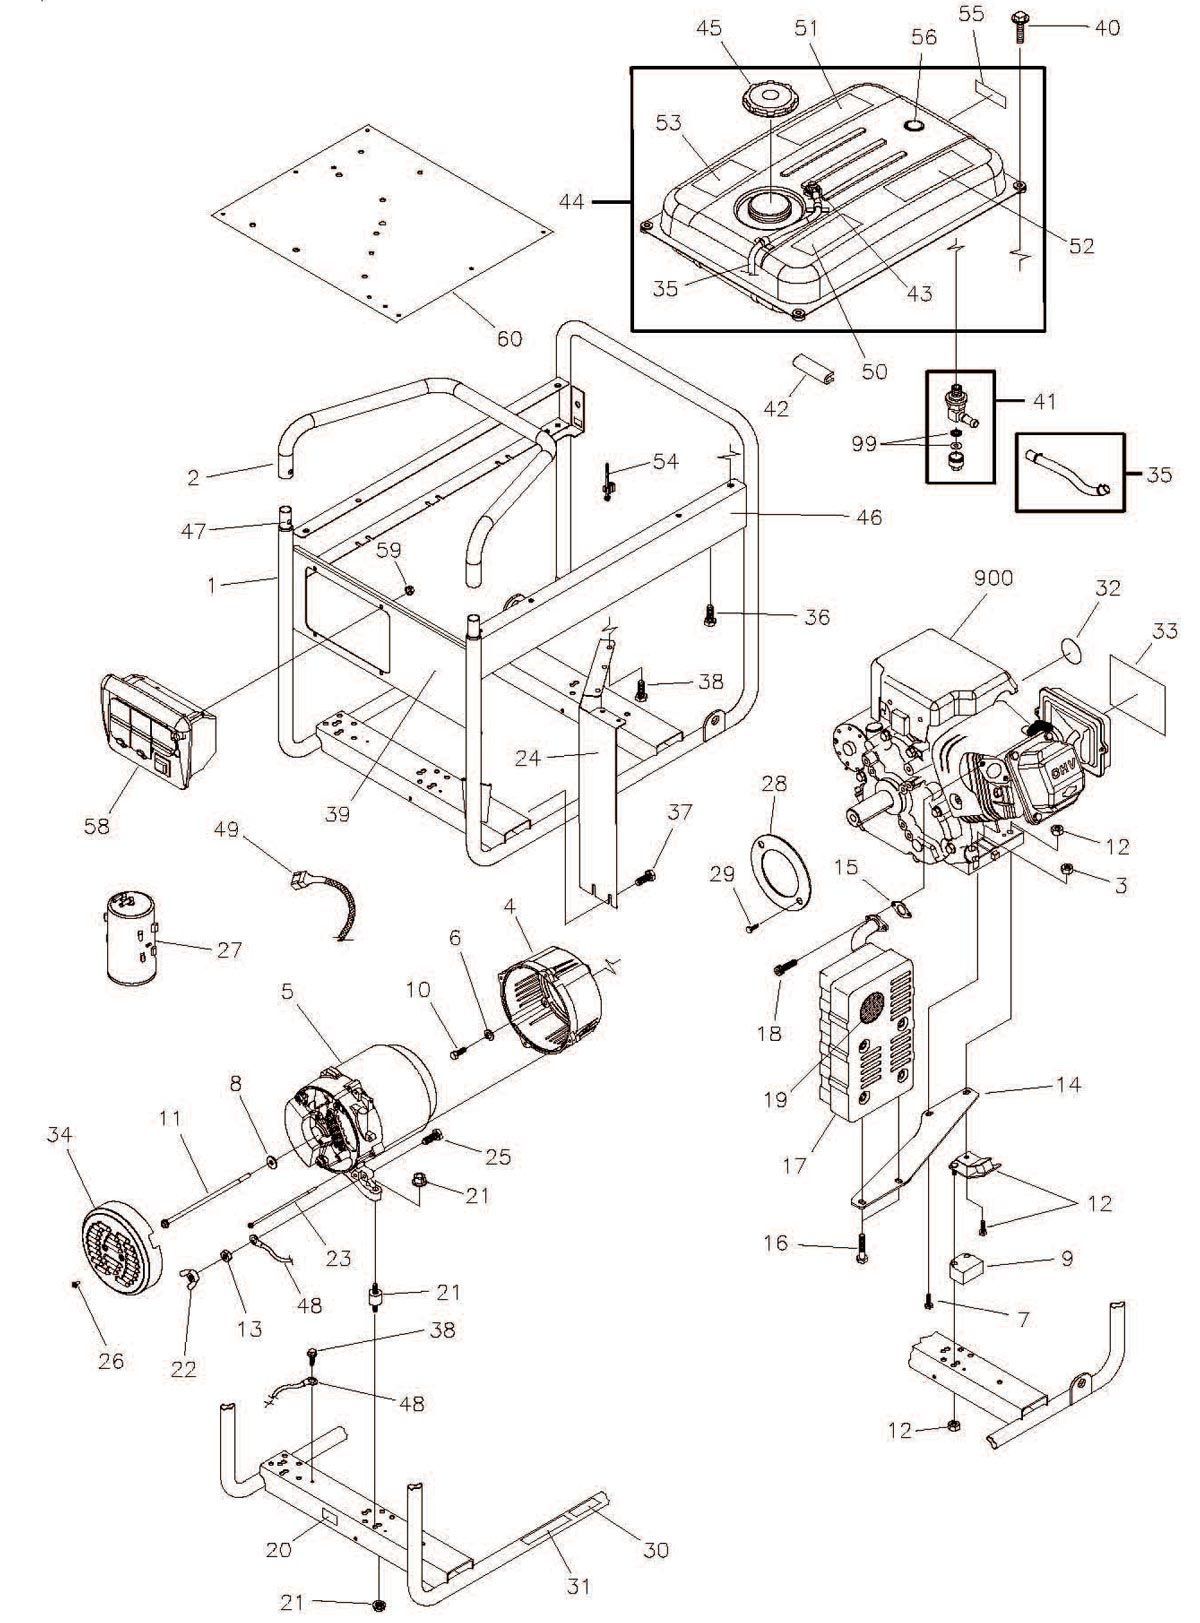 030446, 30446 - Generator Main Unit Parts schematic